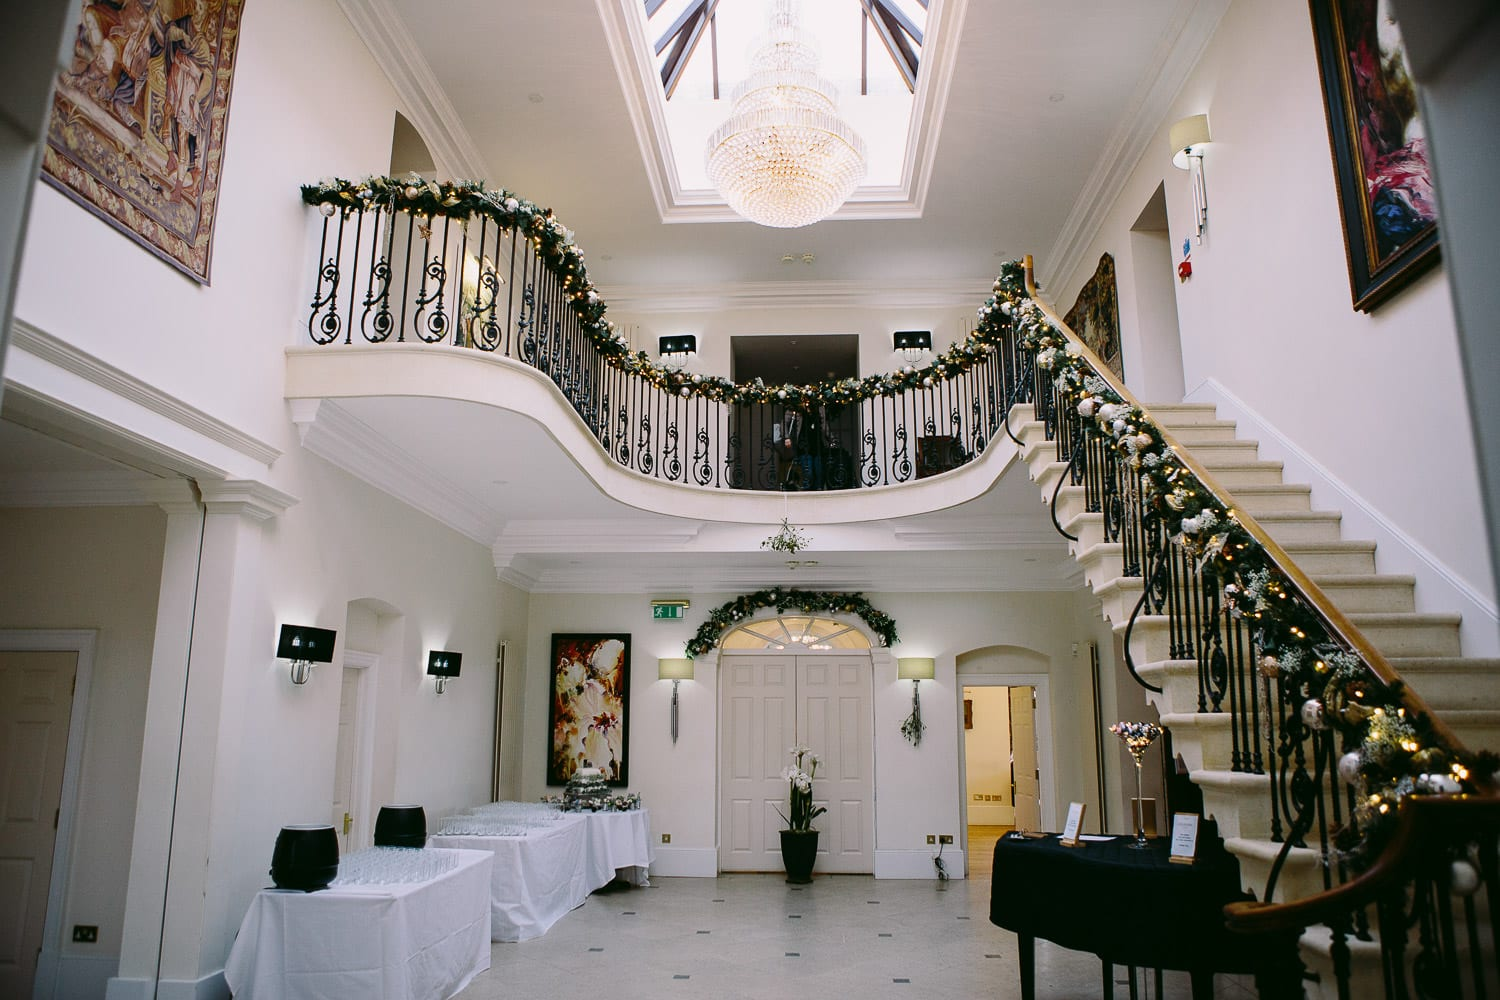 The entrance hall at Old Down Manor